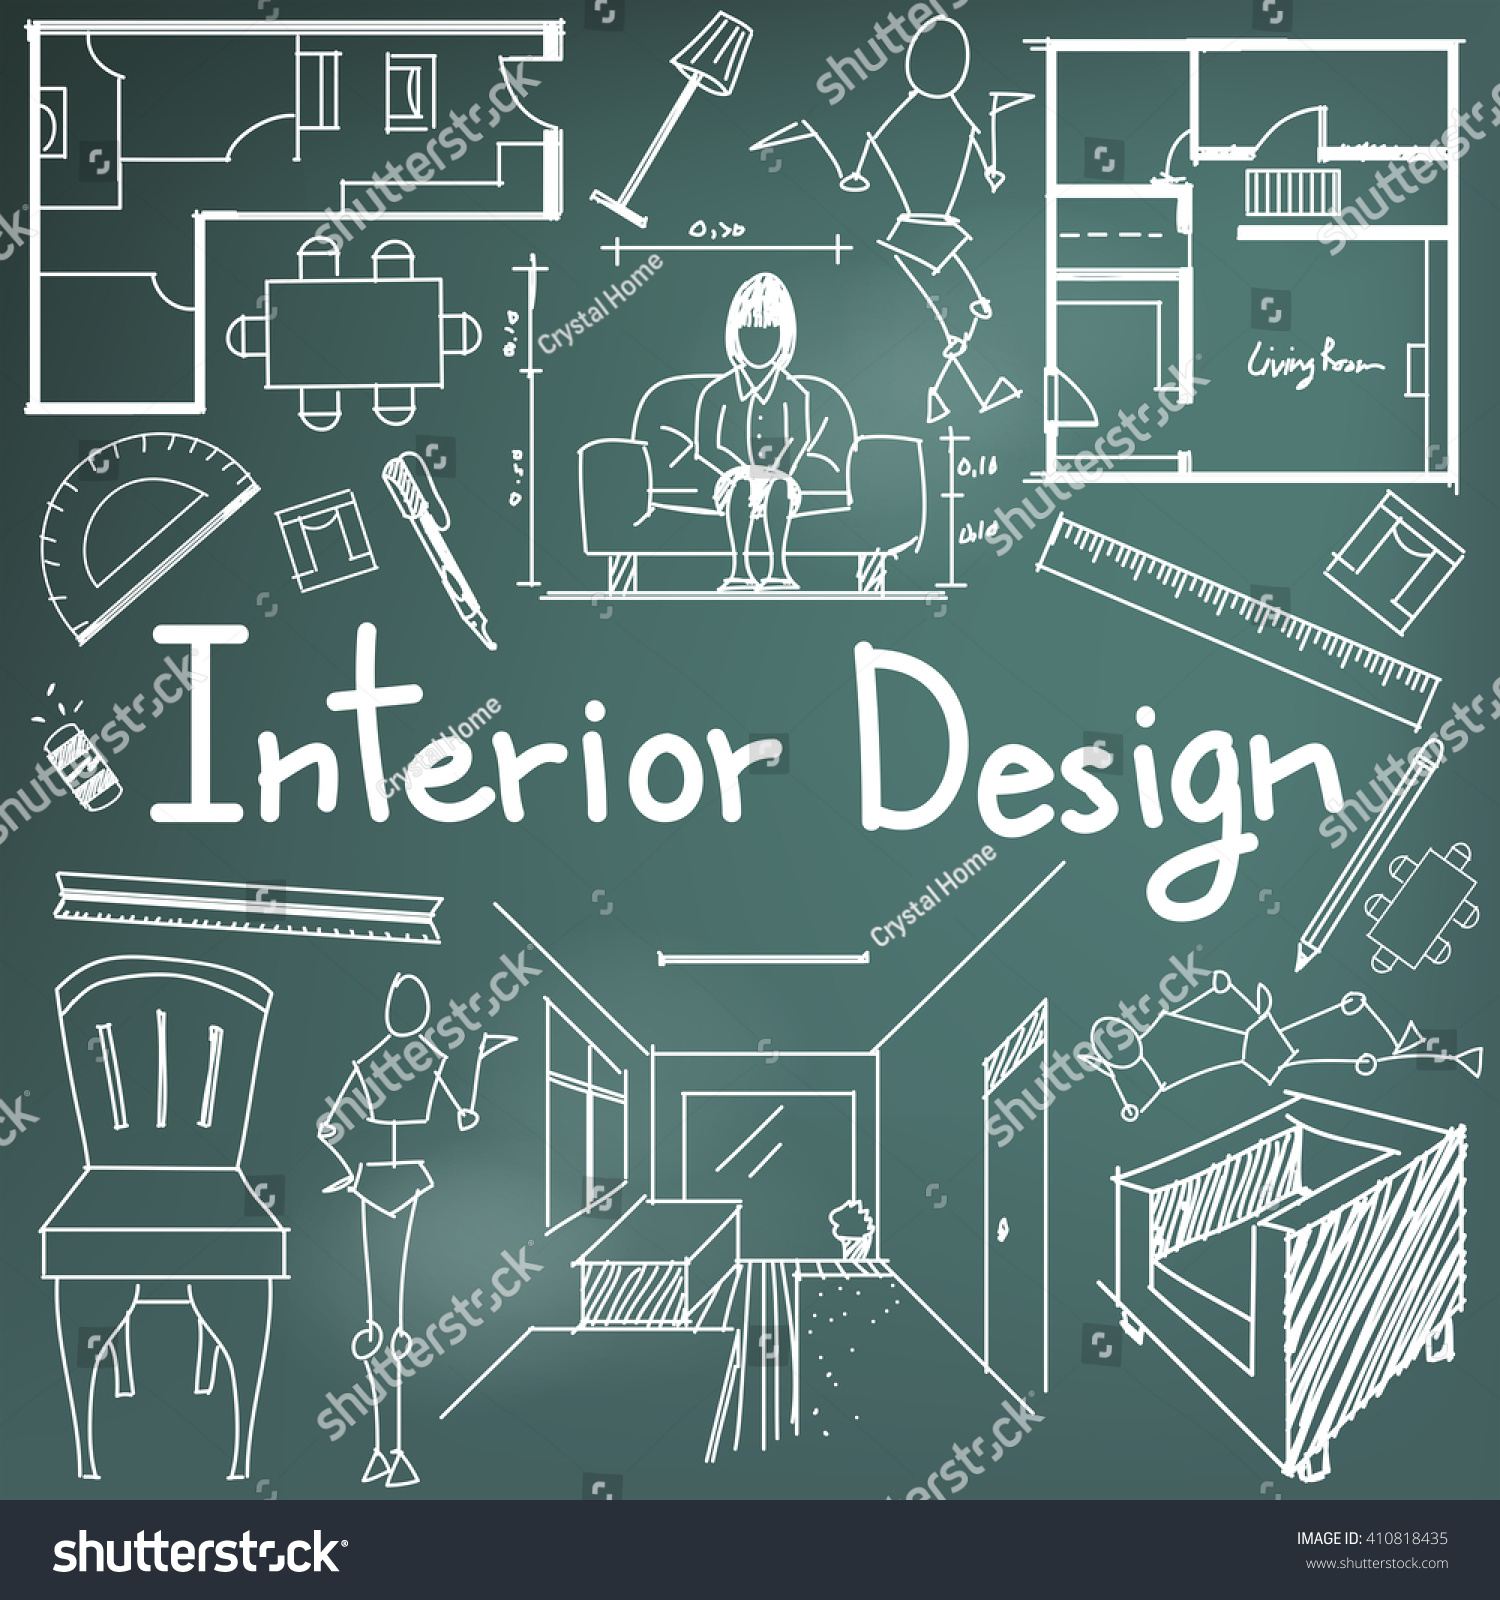 Interior design building blueprint profession education stock vector interior design and building blueprint profession and education handwriting doodle tool sign and symbol in background malvernweather Choice Image